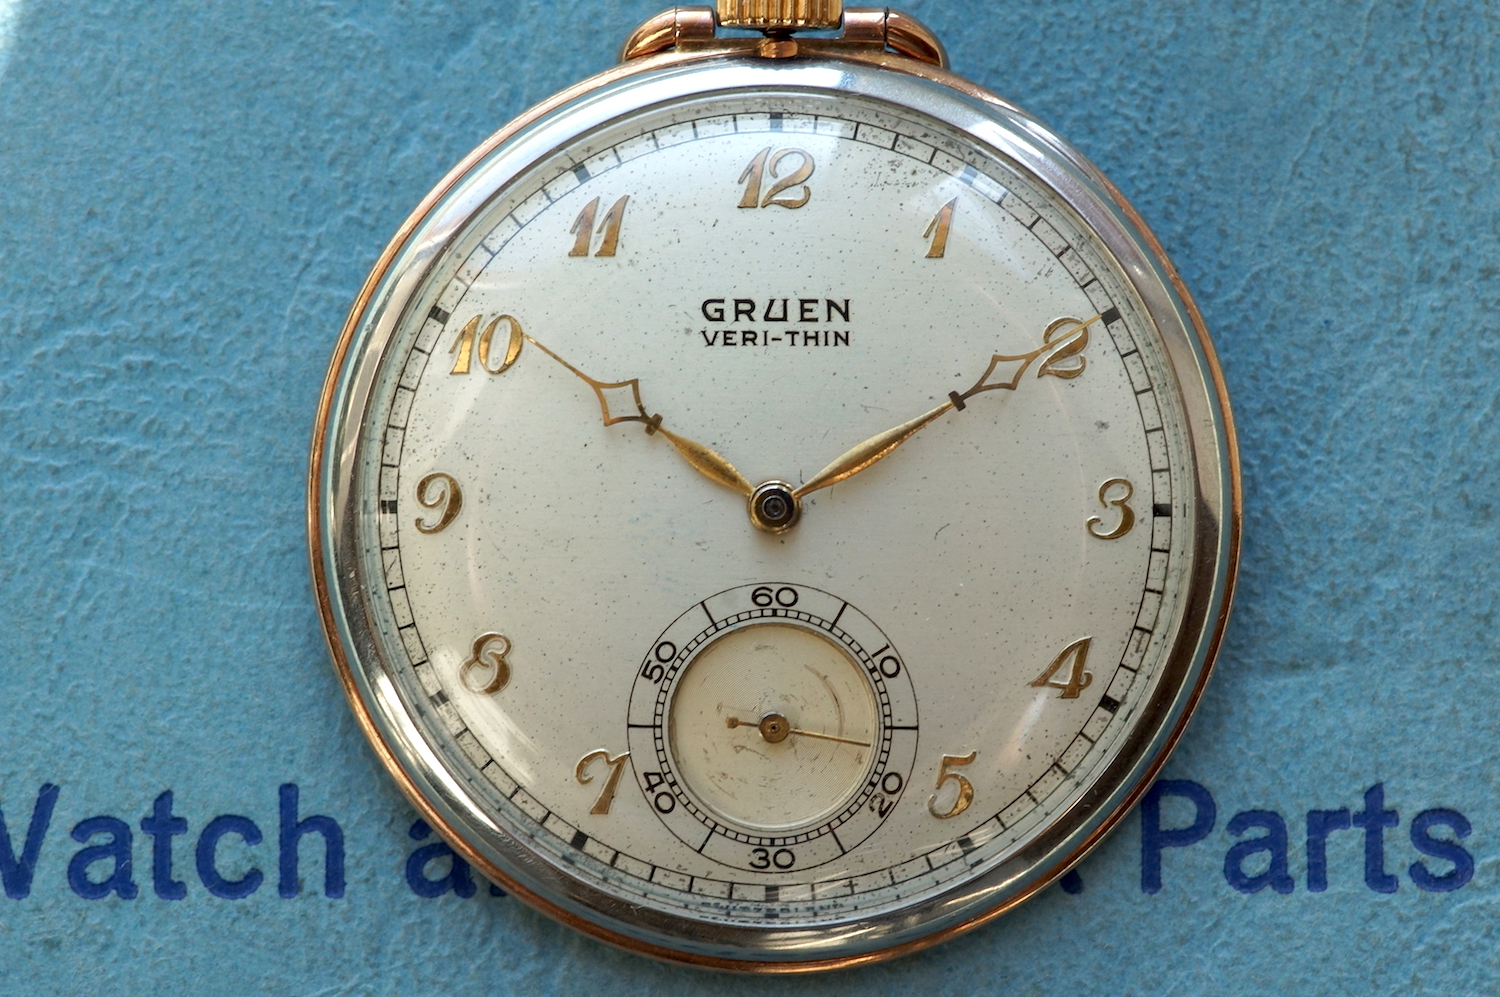 Gruen Veri-thin Pocket Watch